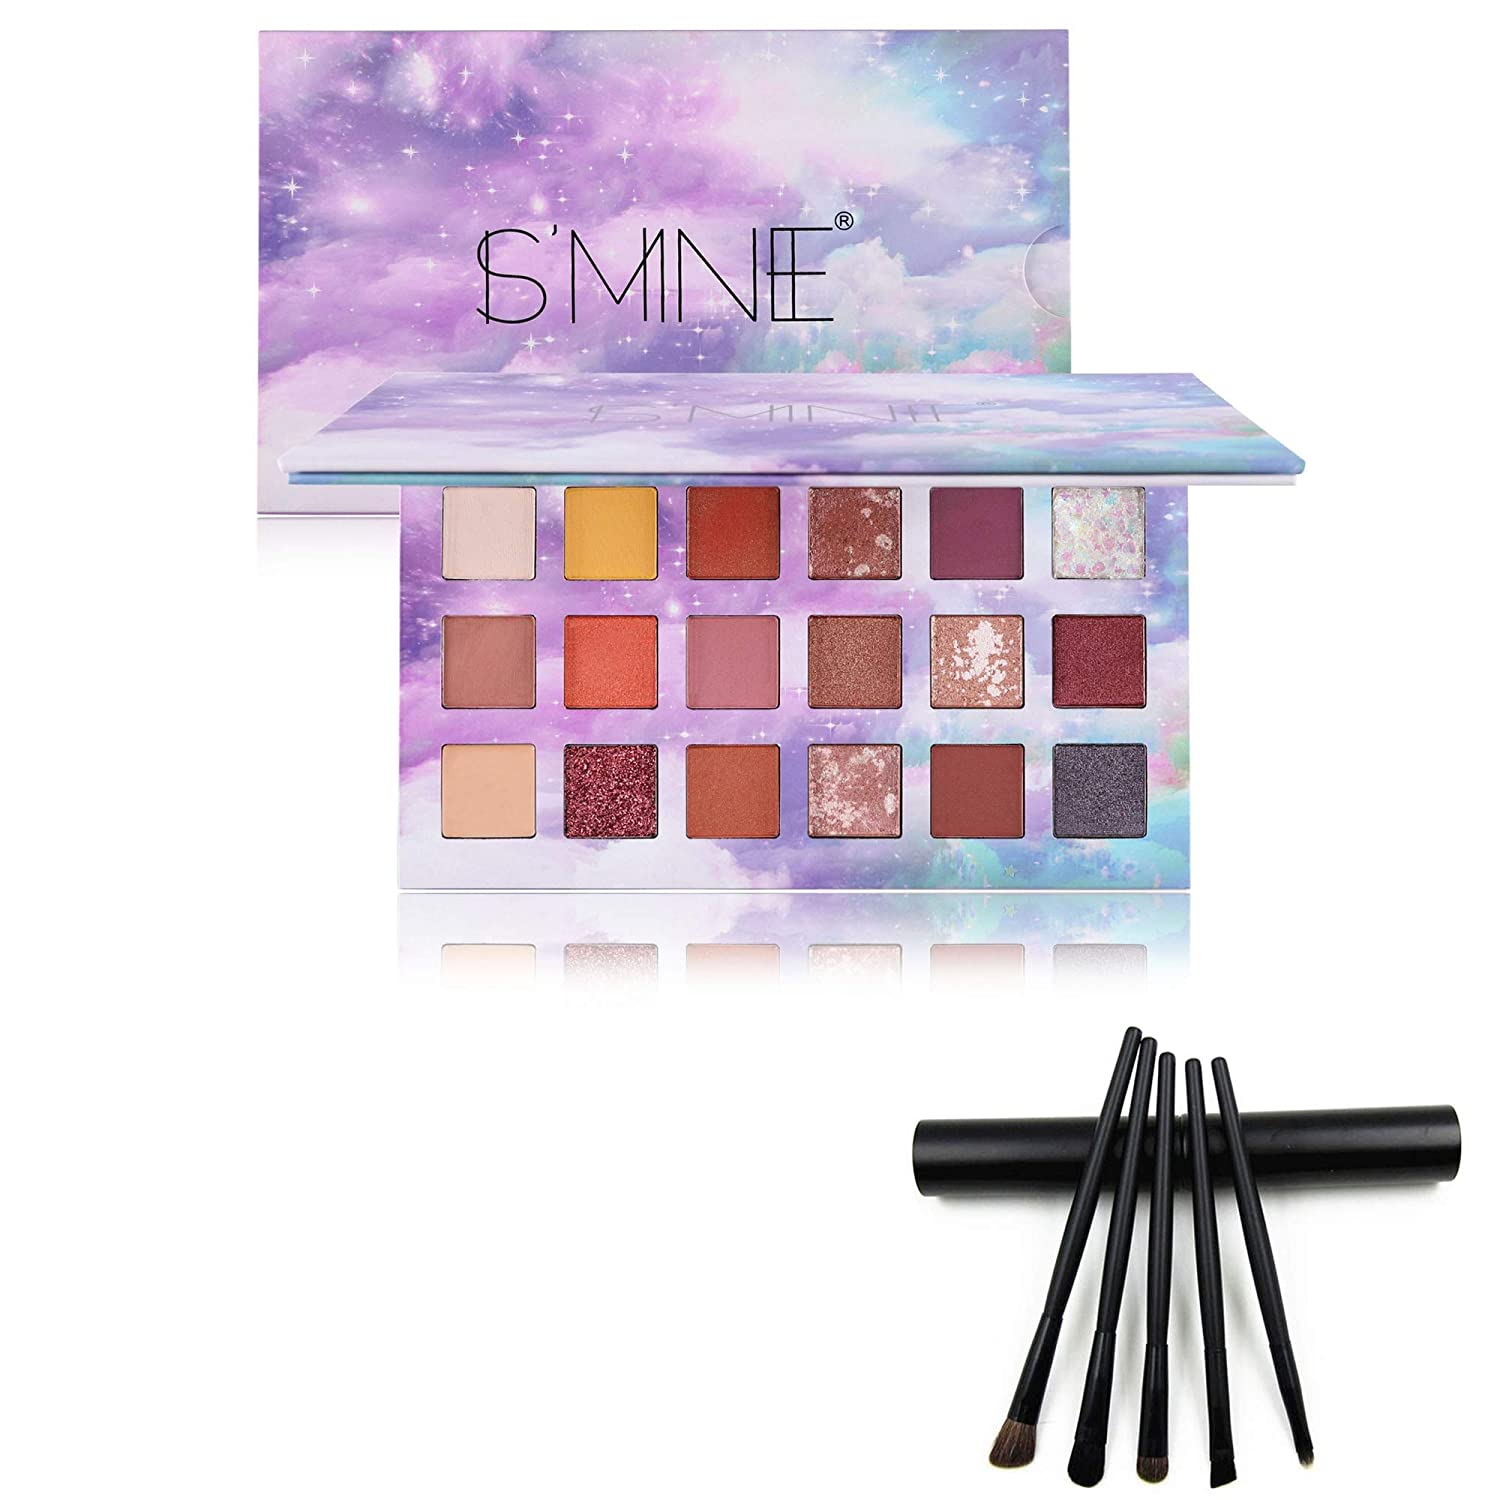 FANICEA Eyeshadow Palette and 5 Pcs Brushes Set Professional Smooth High Pigmented Waterproof Colorful Long Lasting 18 Colors Bright Mattes Shimmers Blendable Natural Eyes Makeup Kit for Daily Party